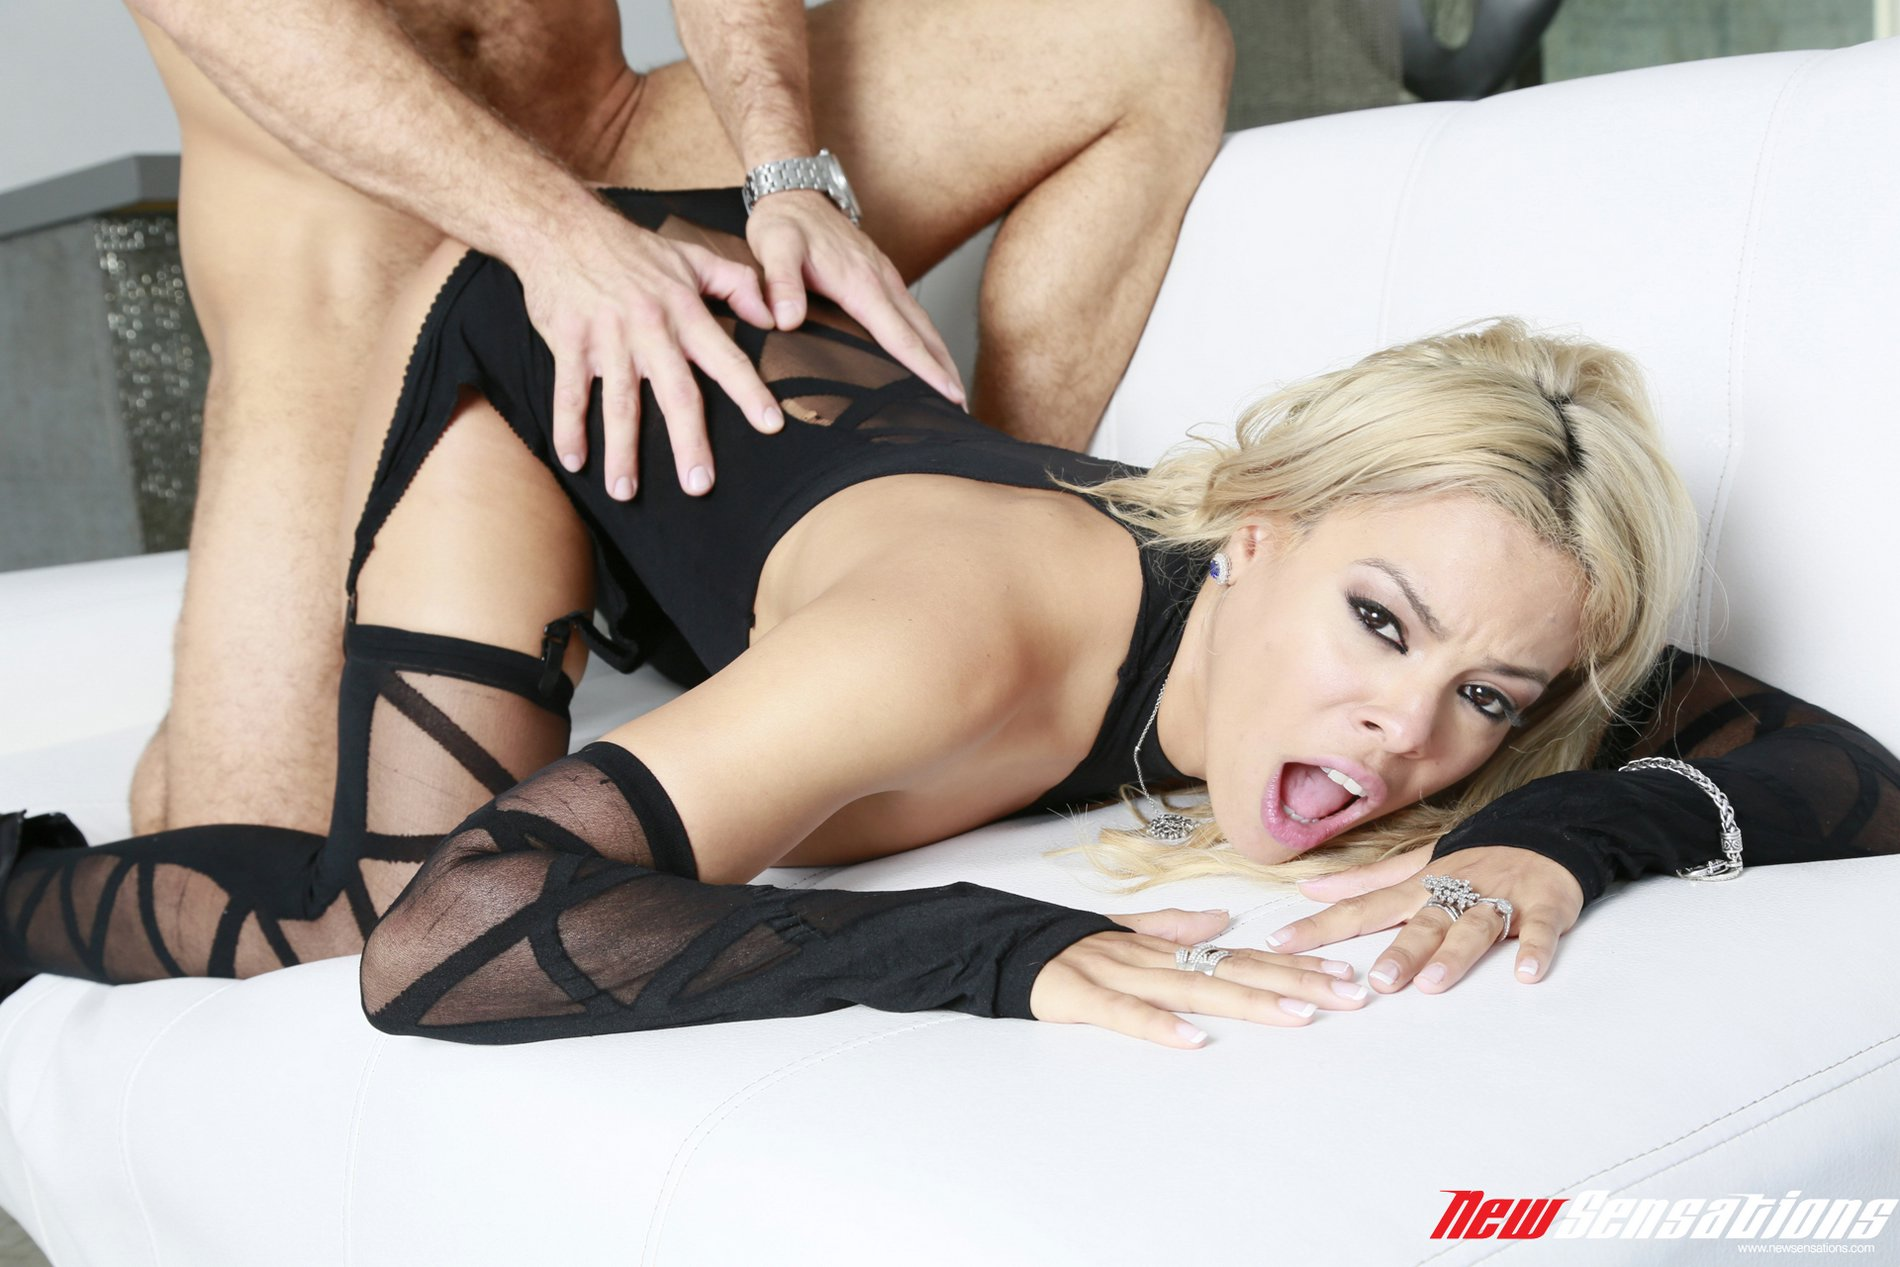 Hot Blonde Luna Star In Sexy Black Lingerie And Stockings Gets